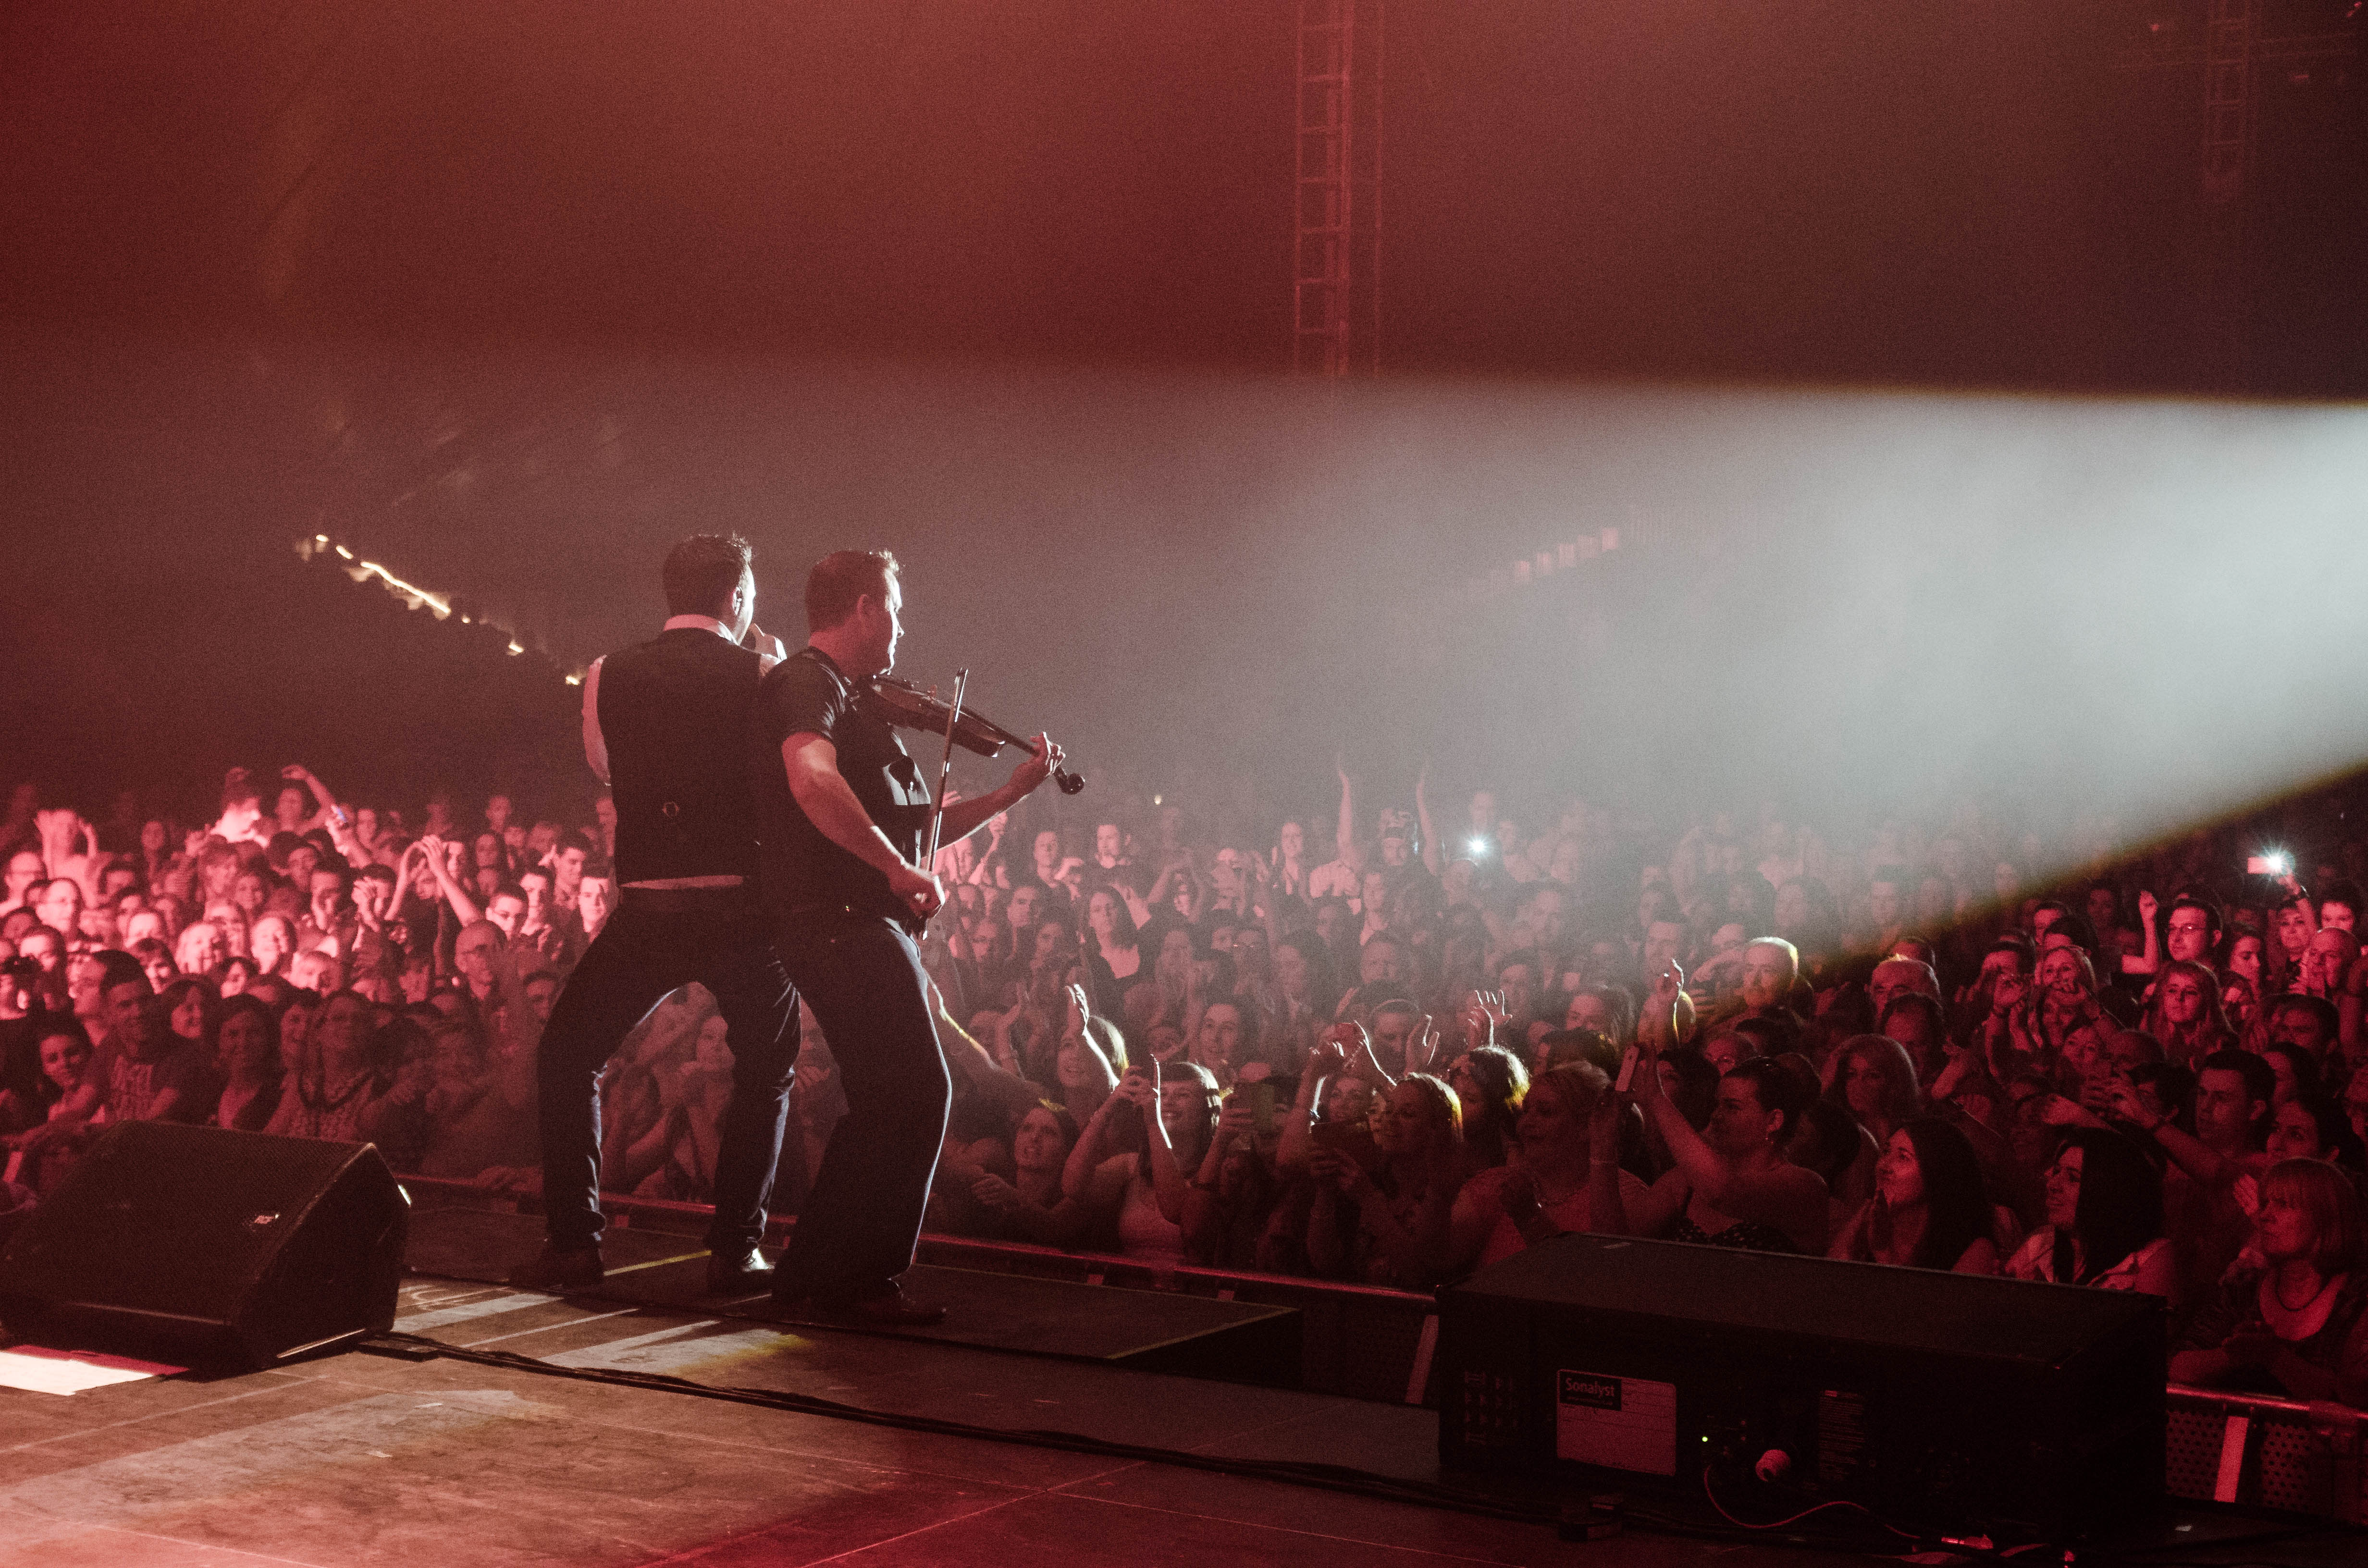 nathan-carter-at-the-marquee-cork-by-sean-smyth-15-6-14-38-of-55